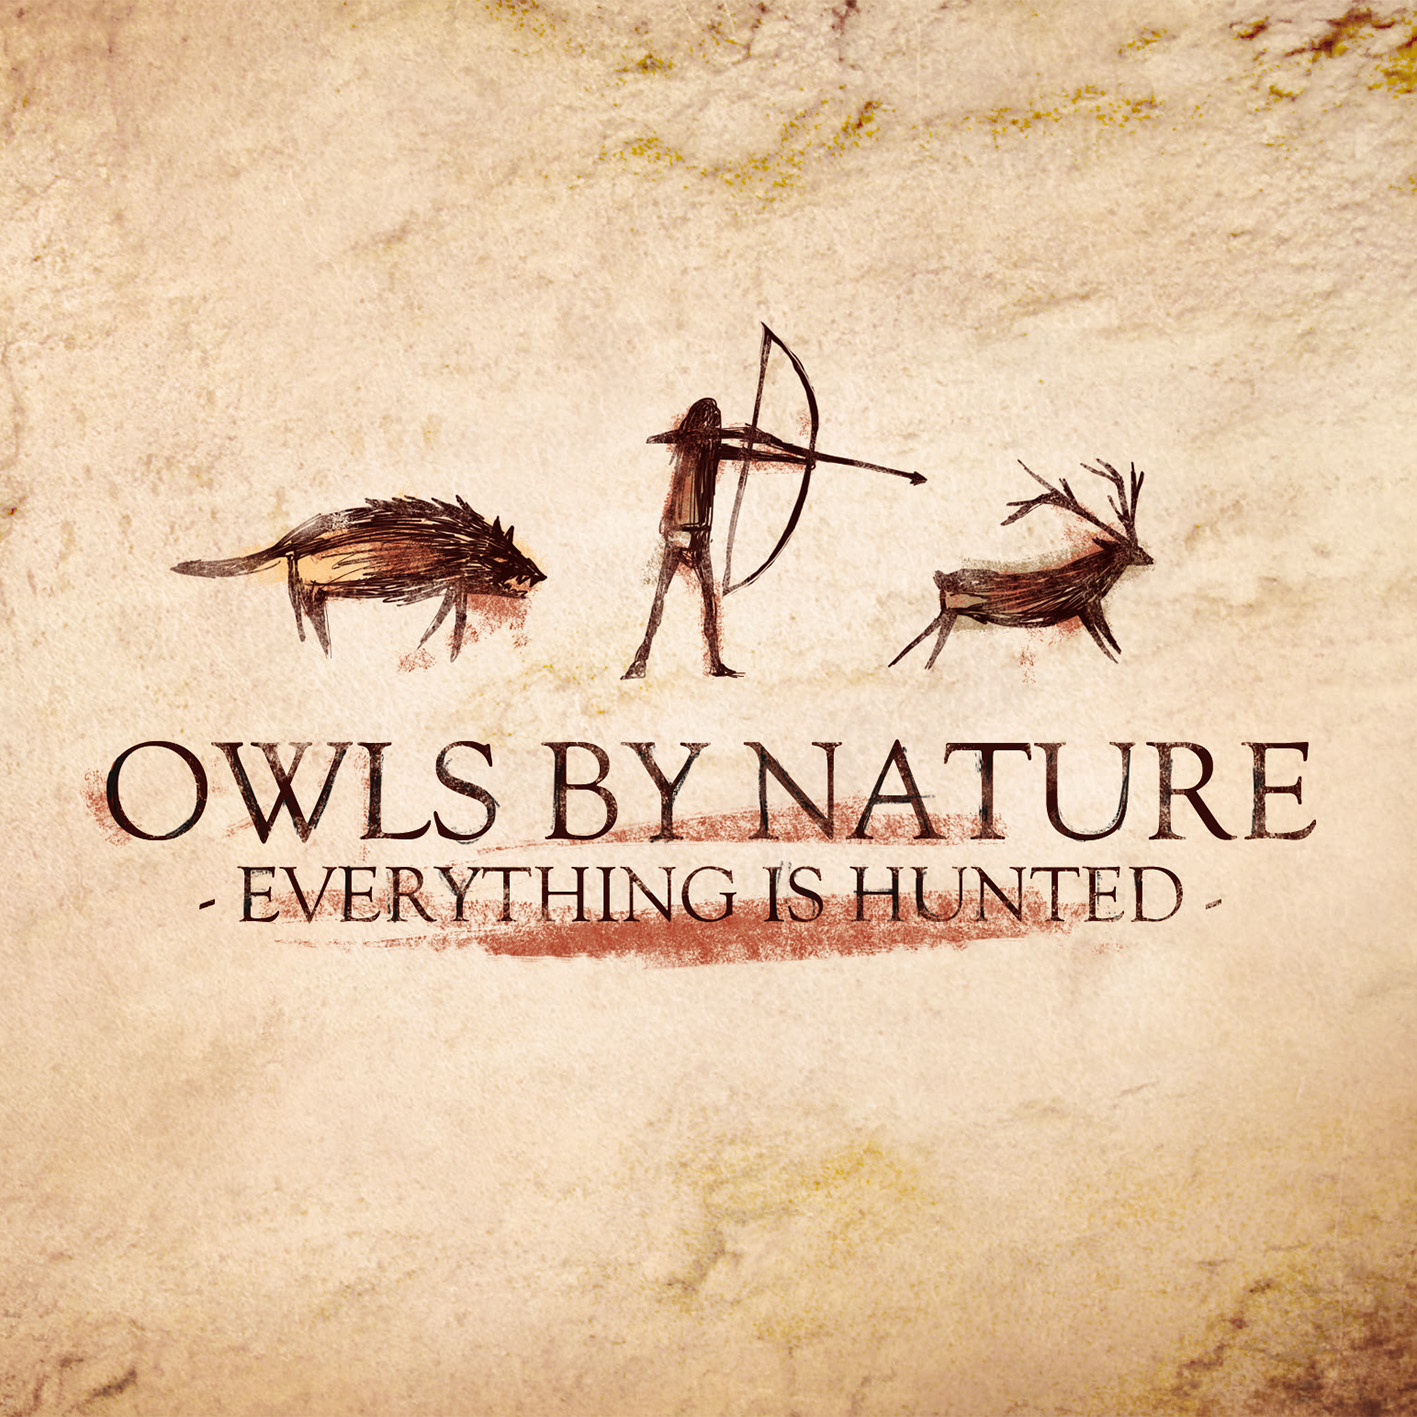 Owls By Nature - Everything is hunted